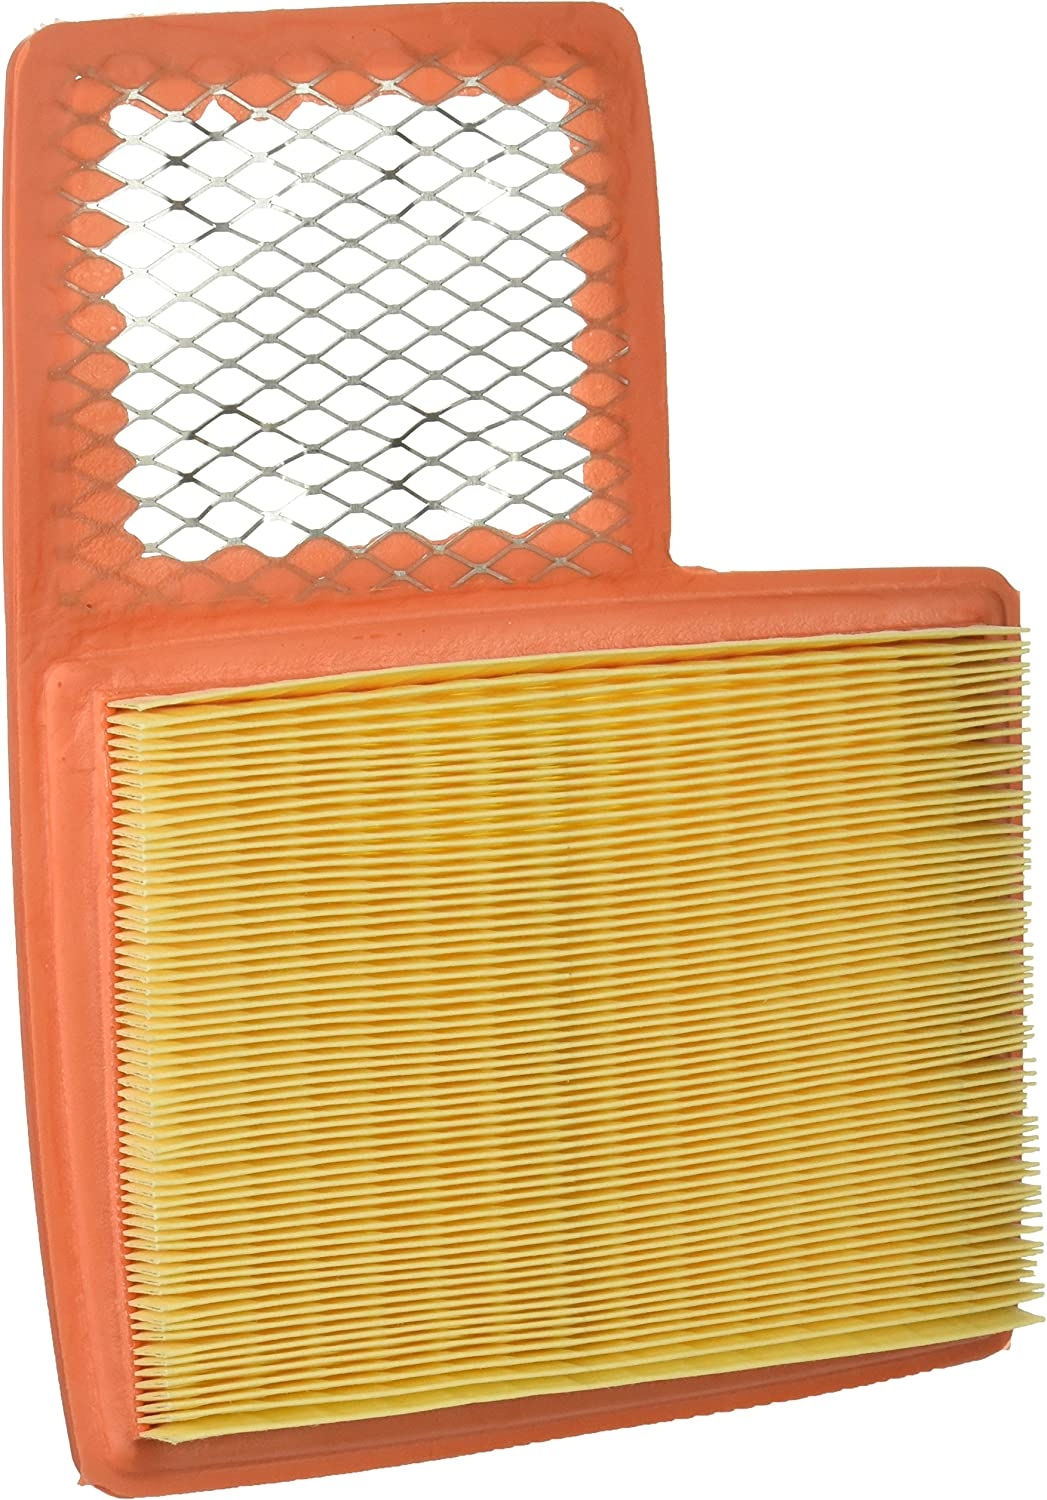 WIX Filters 49130 Heavy Duty Air Filter Panel Pack of 1